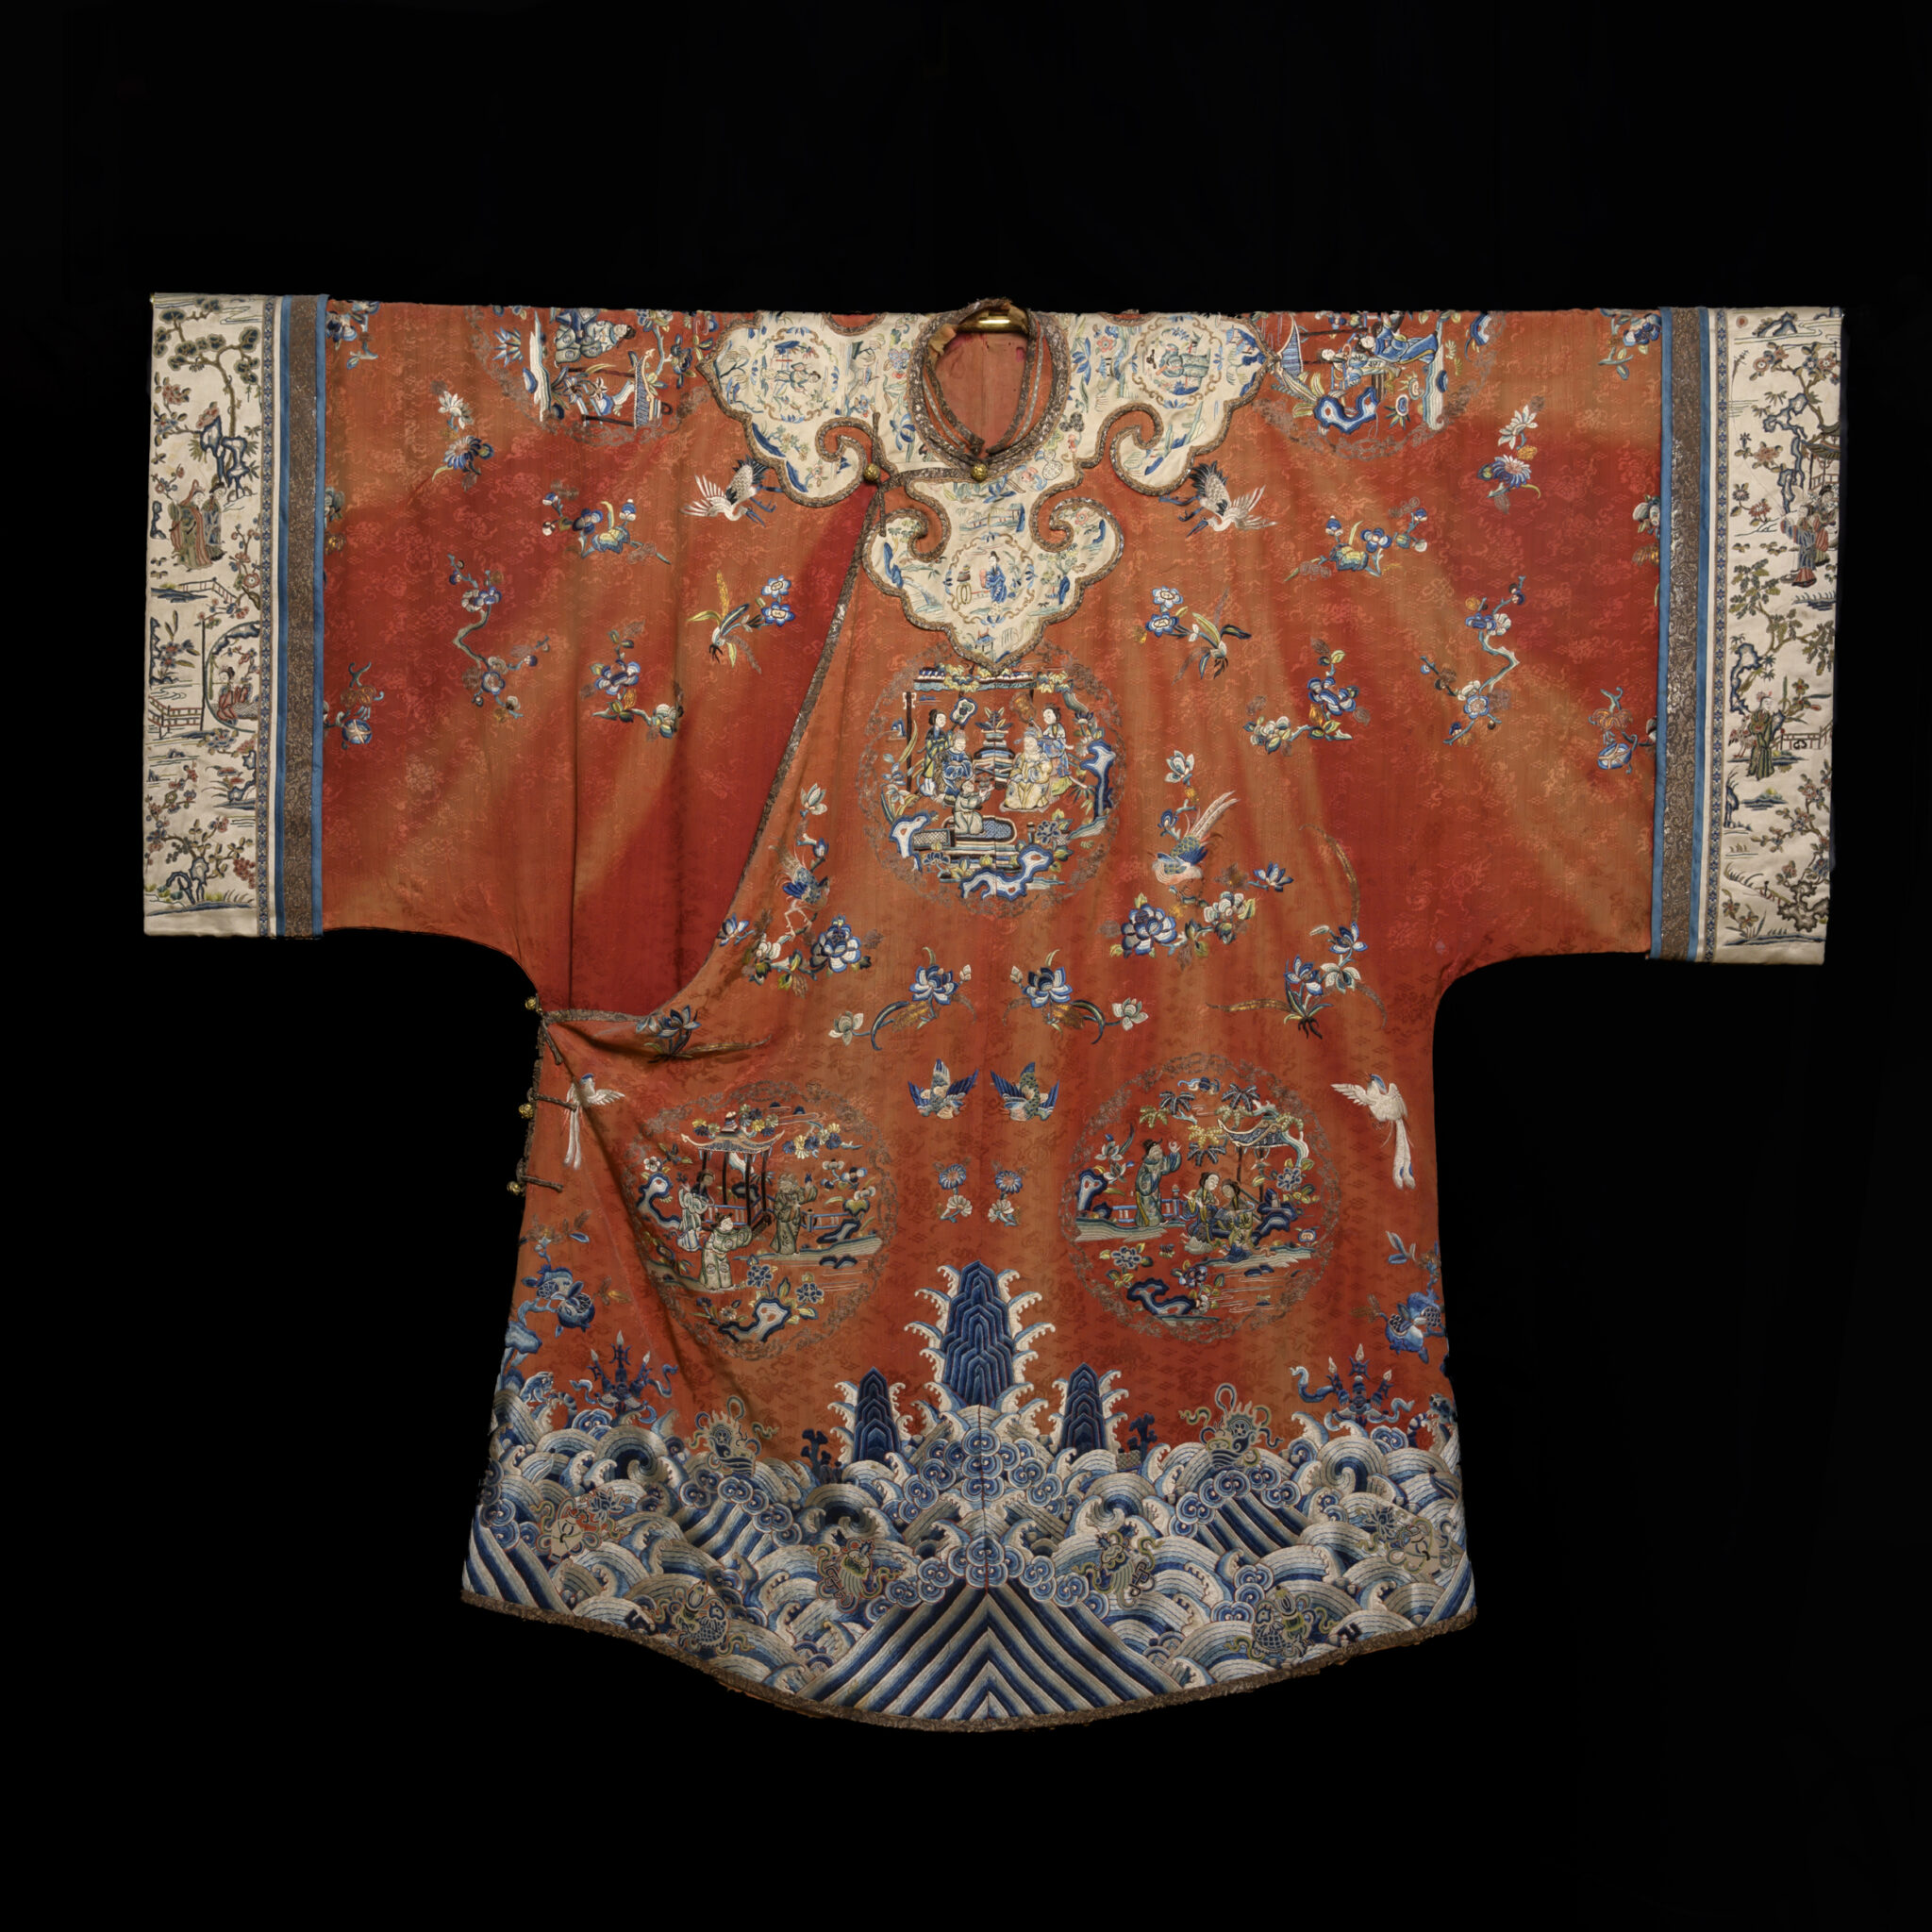 Exemplary 19th Century Qing Dynasty Chinese Embroidered Court Robe | Sold for $4,125